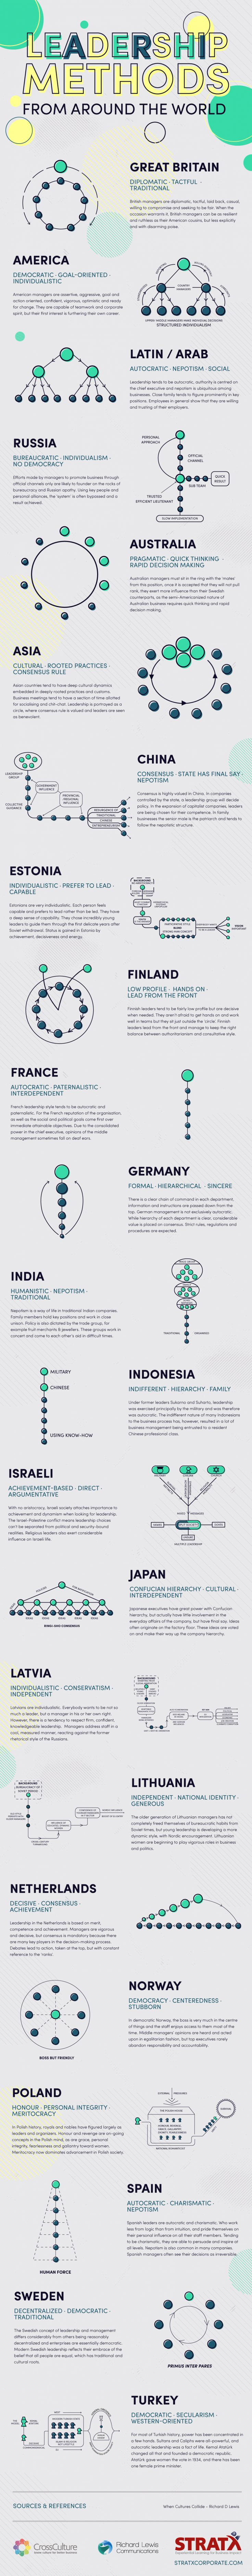 Leadership Methods from Around the World #Infographic #Leadership #Travel